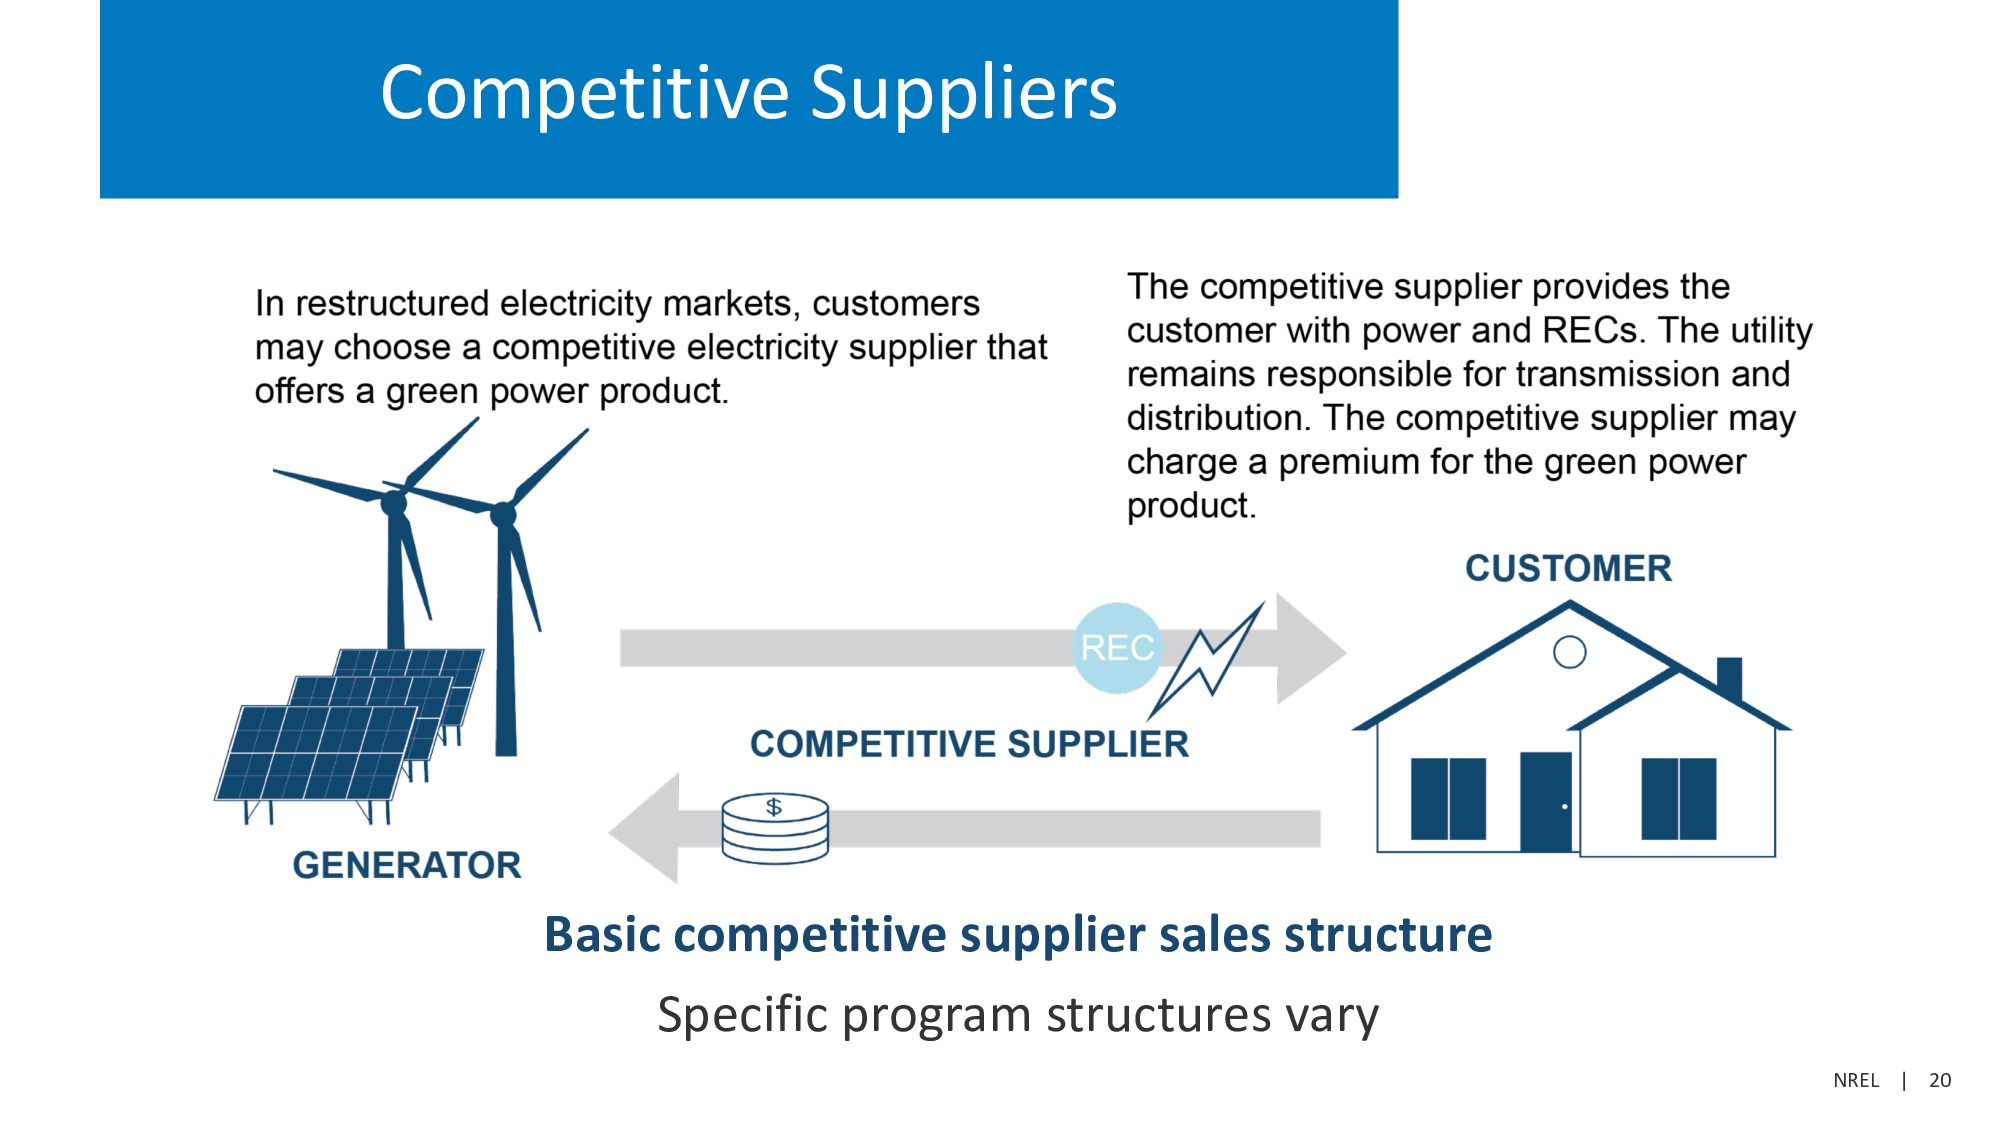 NREL | 20 Competitive Suppliers Basic competiti...